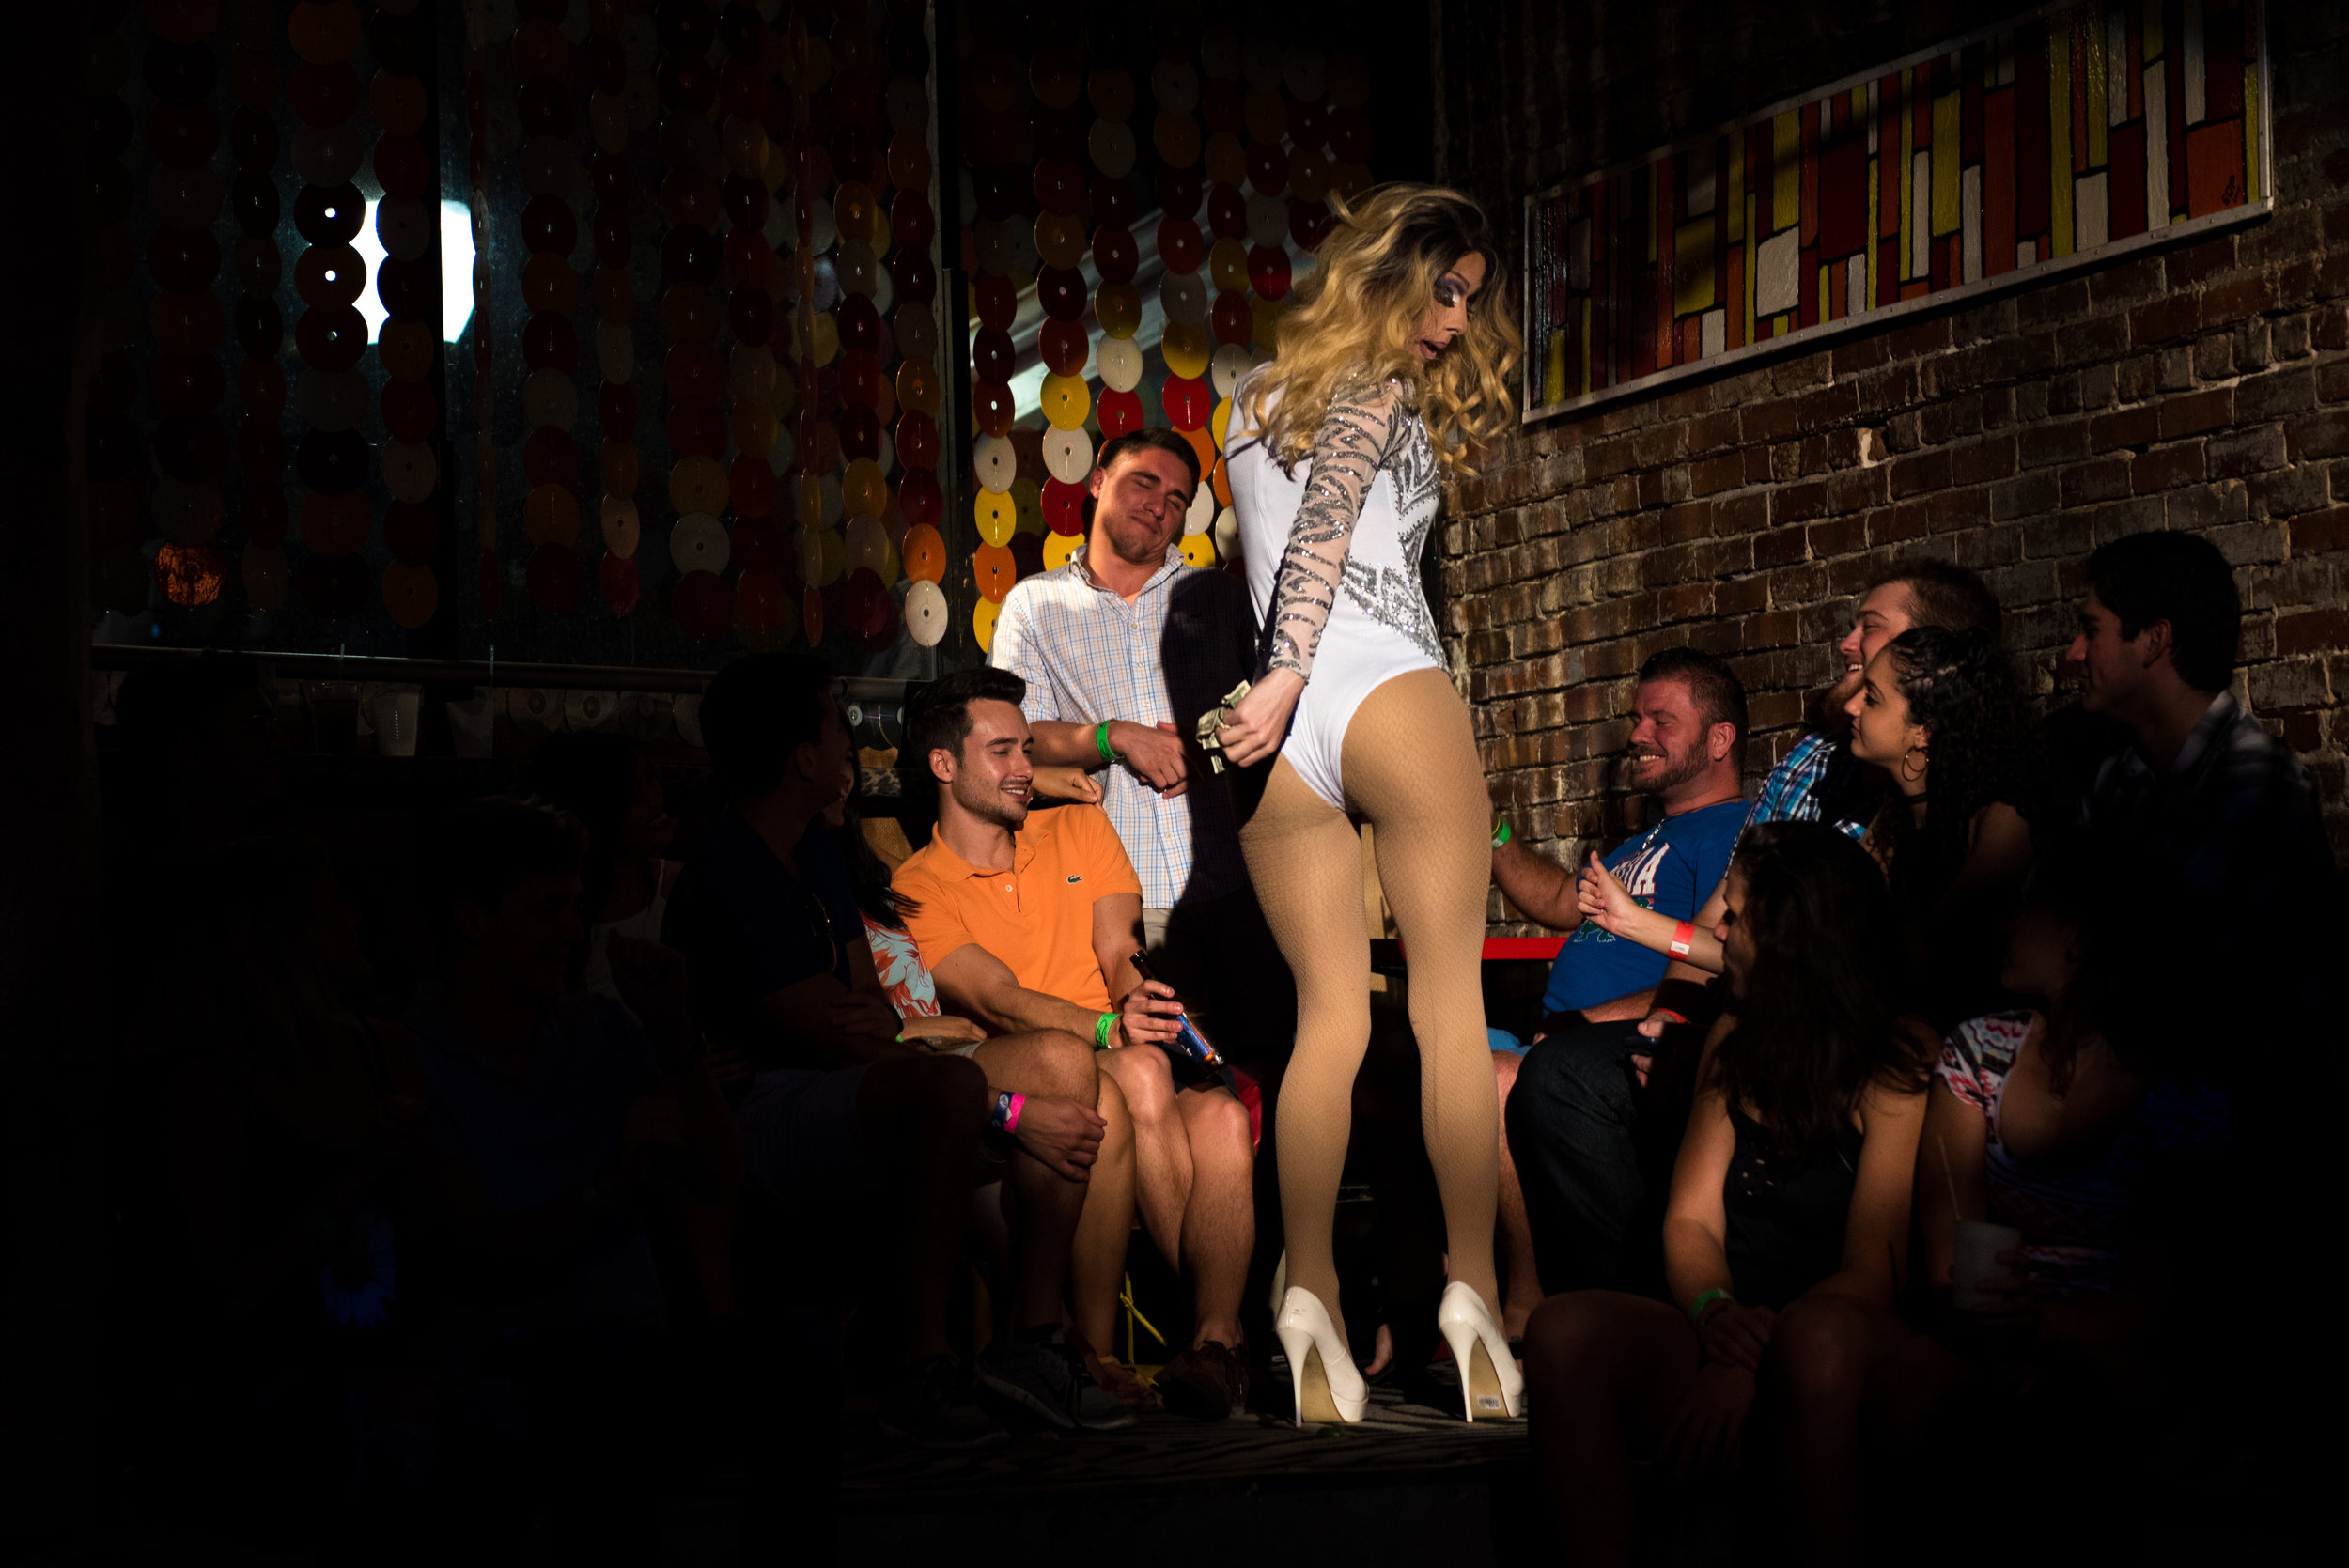 """Lip syncing to Ariana Grande's """"Side To Side,"""" Rachel makes her rounds through the crowd at a local gay club. She said she tries to involve the crowd as much as possible, pulling people to join her on stage or singling someone out to receive a lap dance."""